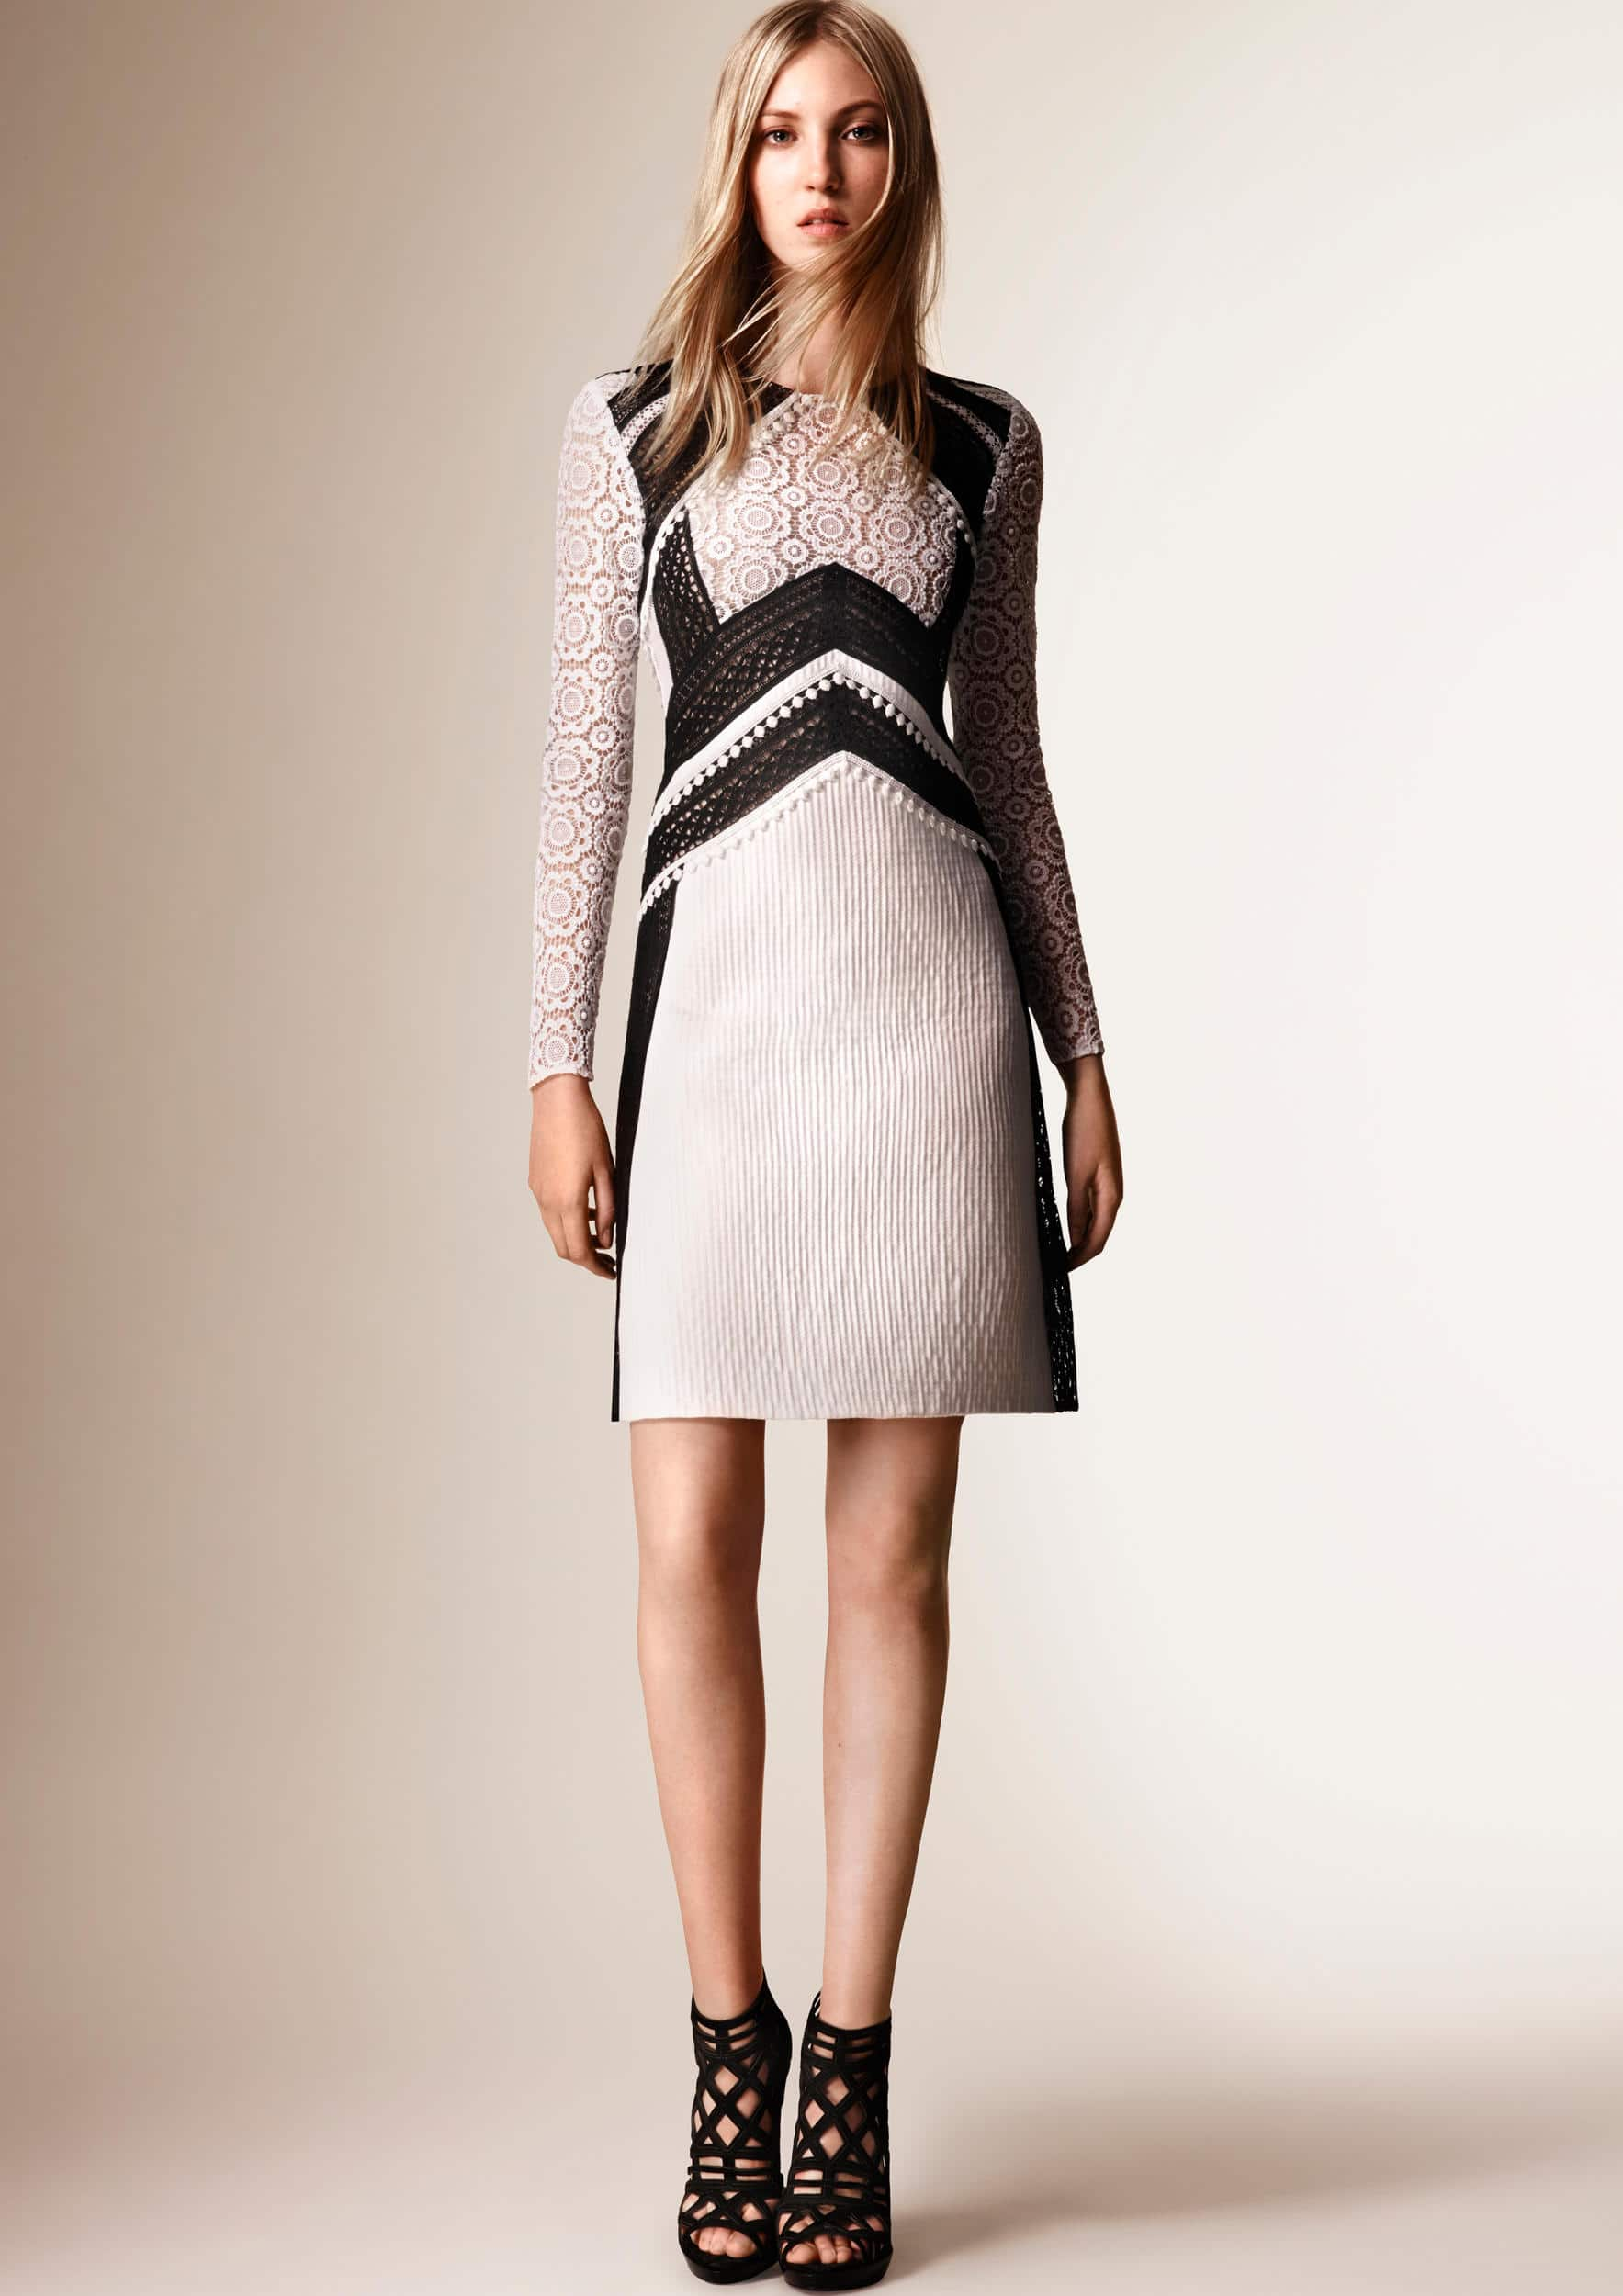 burberry-resort-collection-2016-1